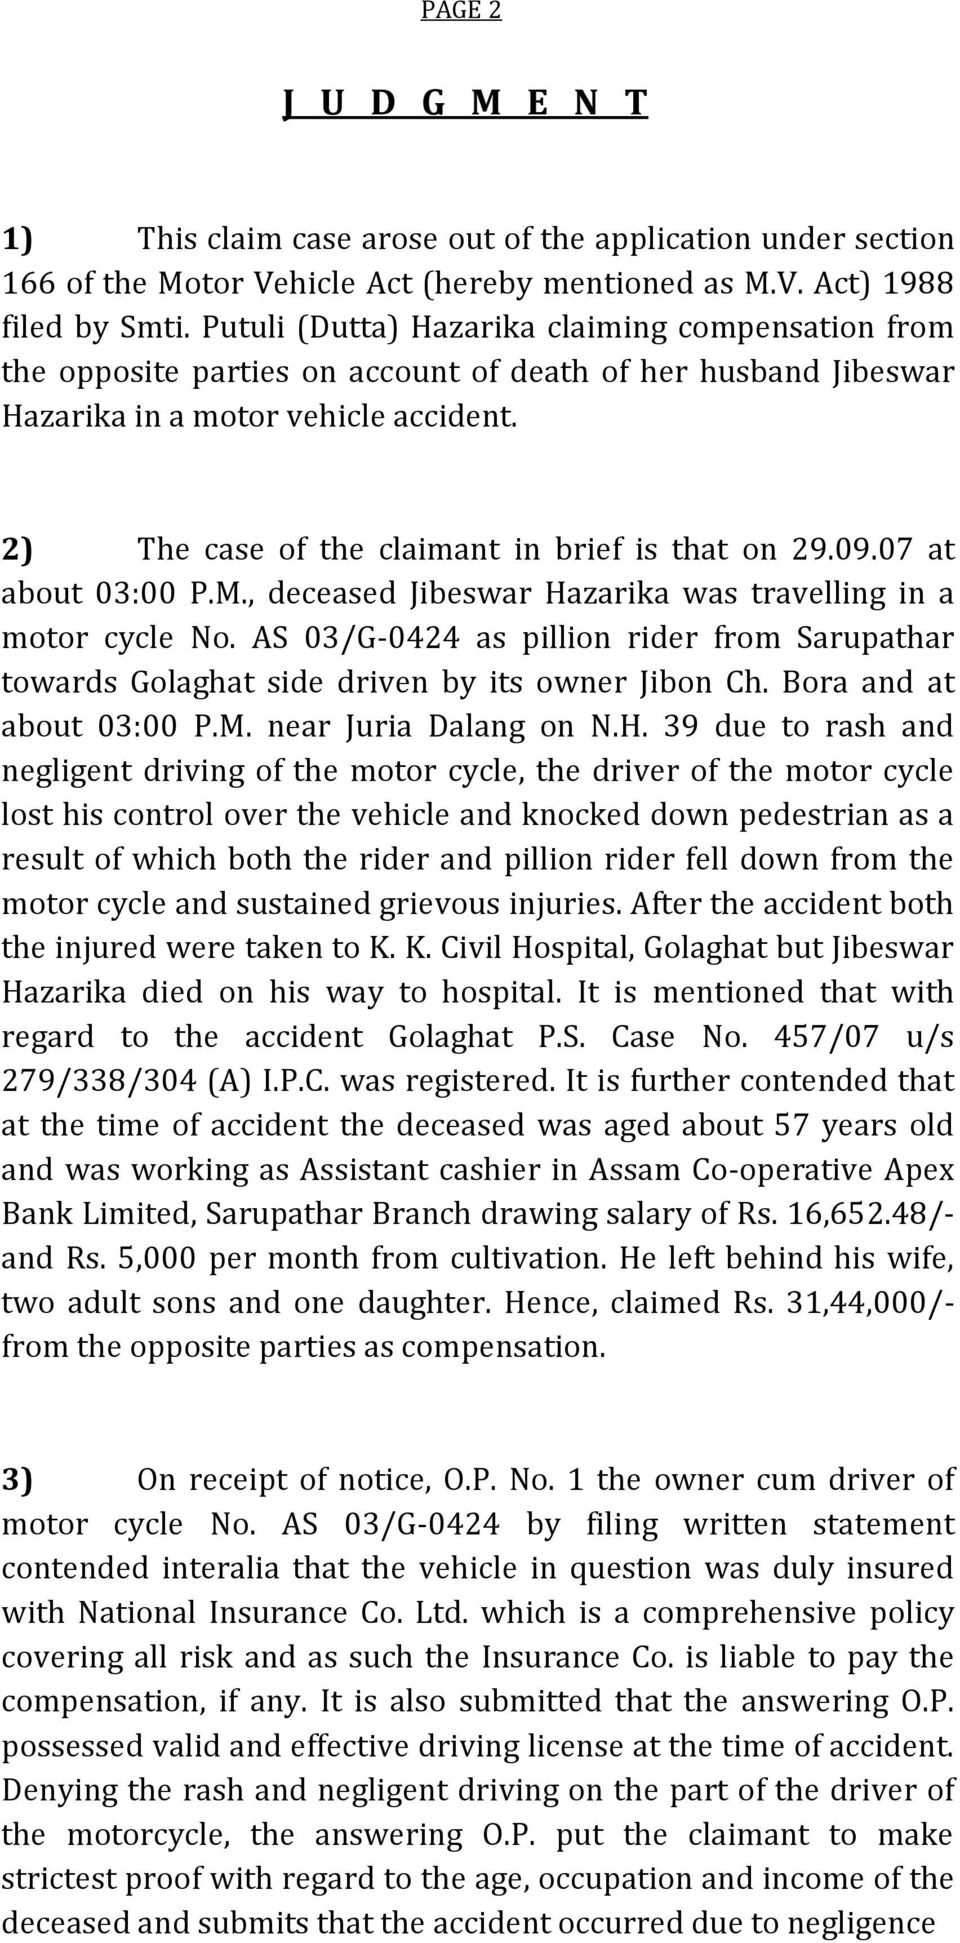 2) The case of the claimant in brief is that on 29.09.07 at about 03:00 P.M., deceased Jibeswar Hazarika was travelling in a motor cycle No.